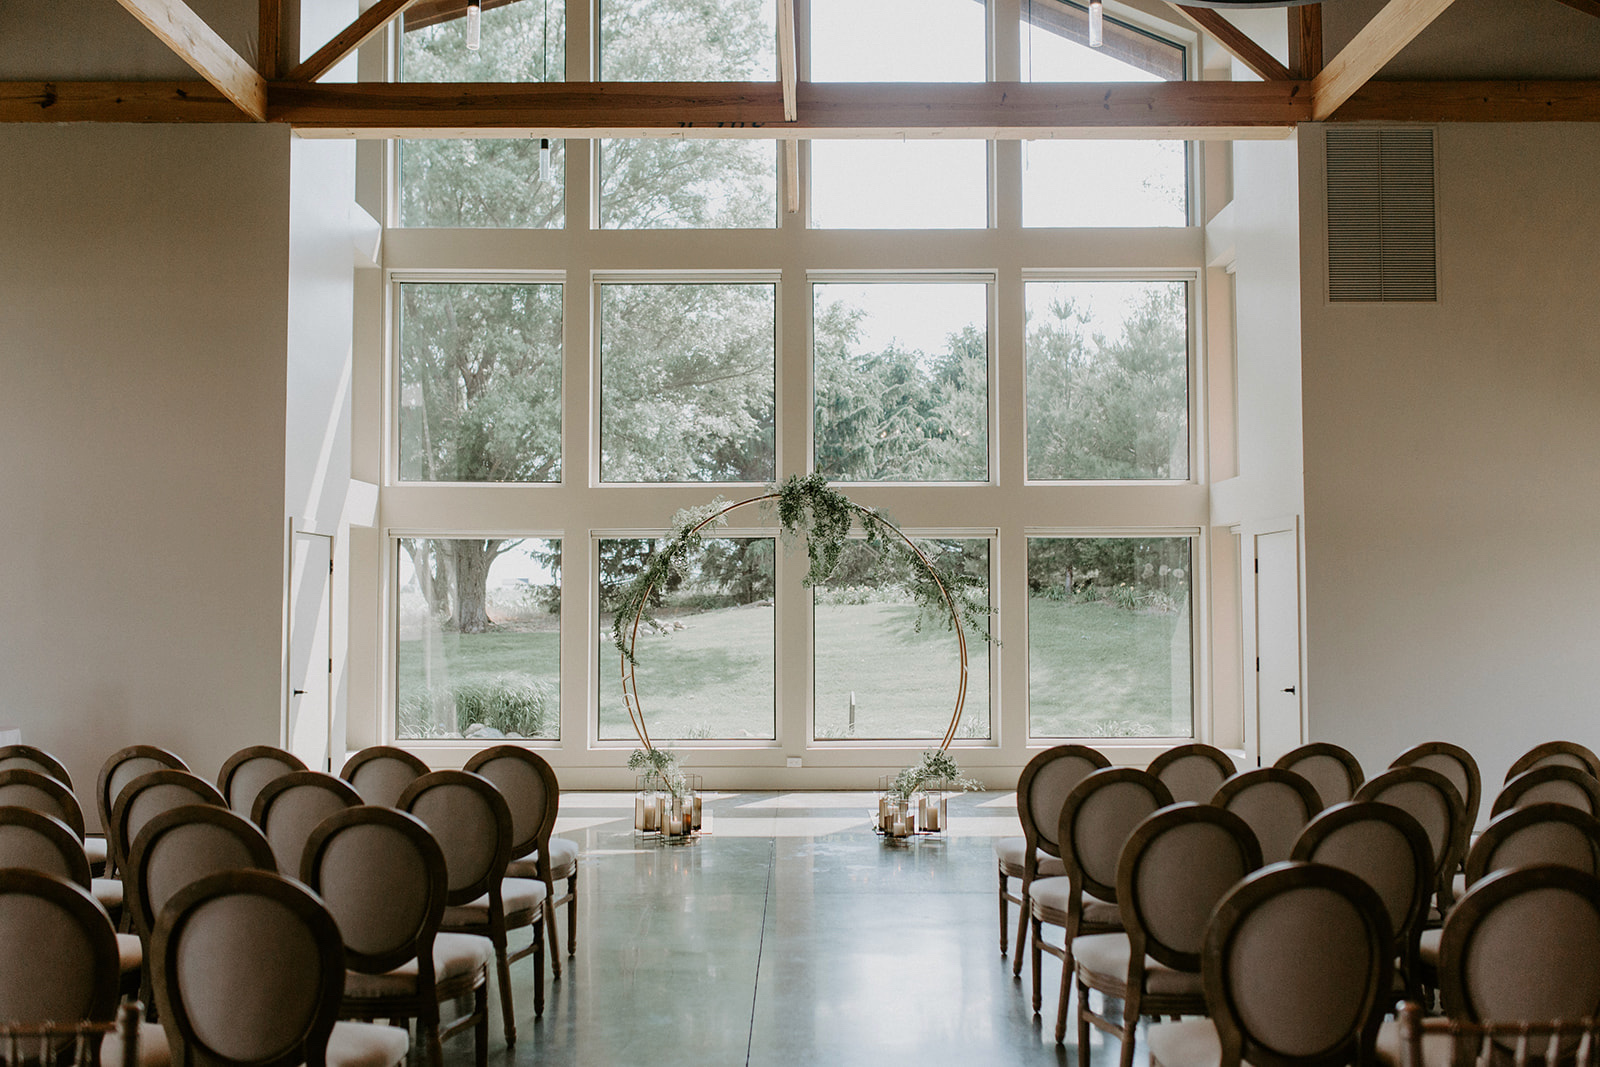 pear_tree_estate_wedding_champaign_il_wright_photographs_smith_0593.jpg